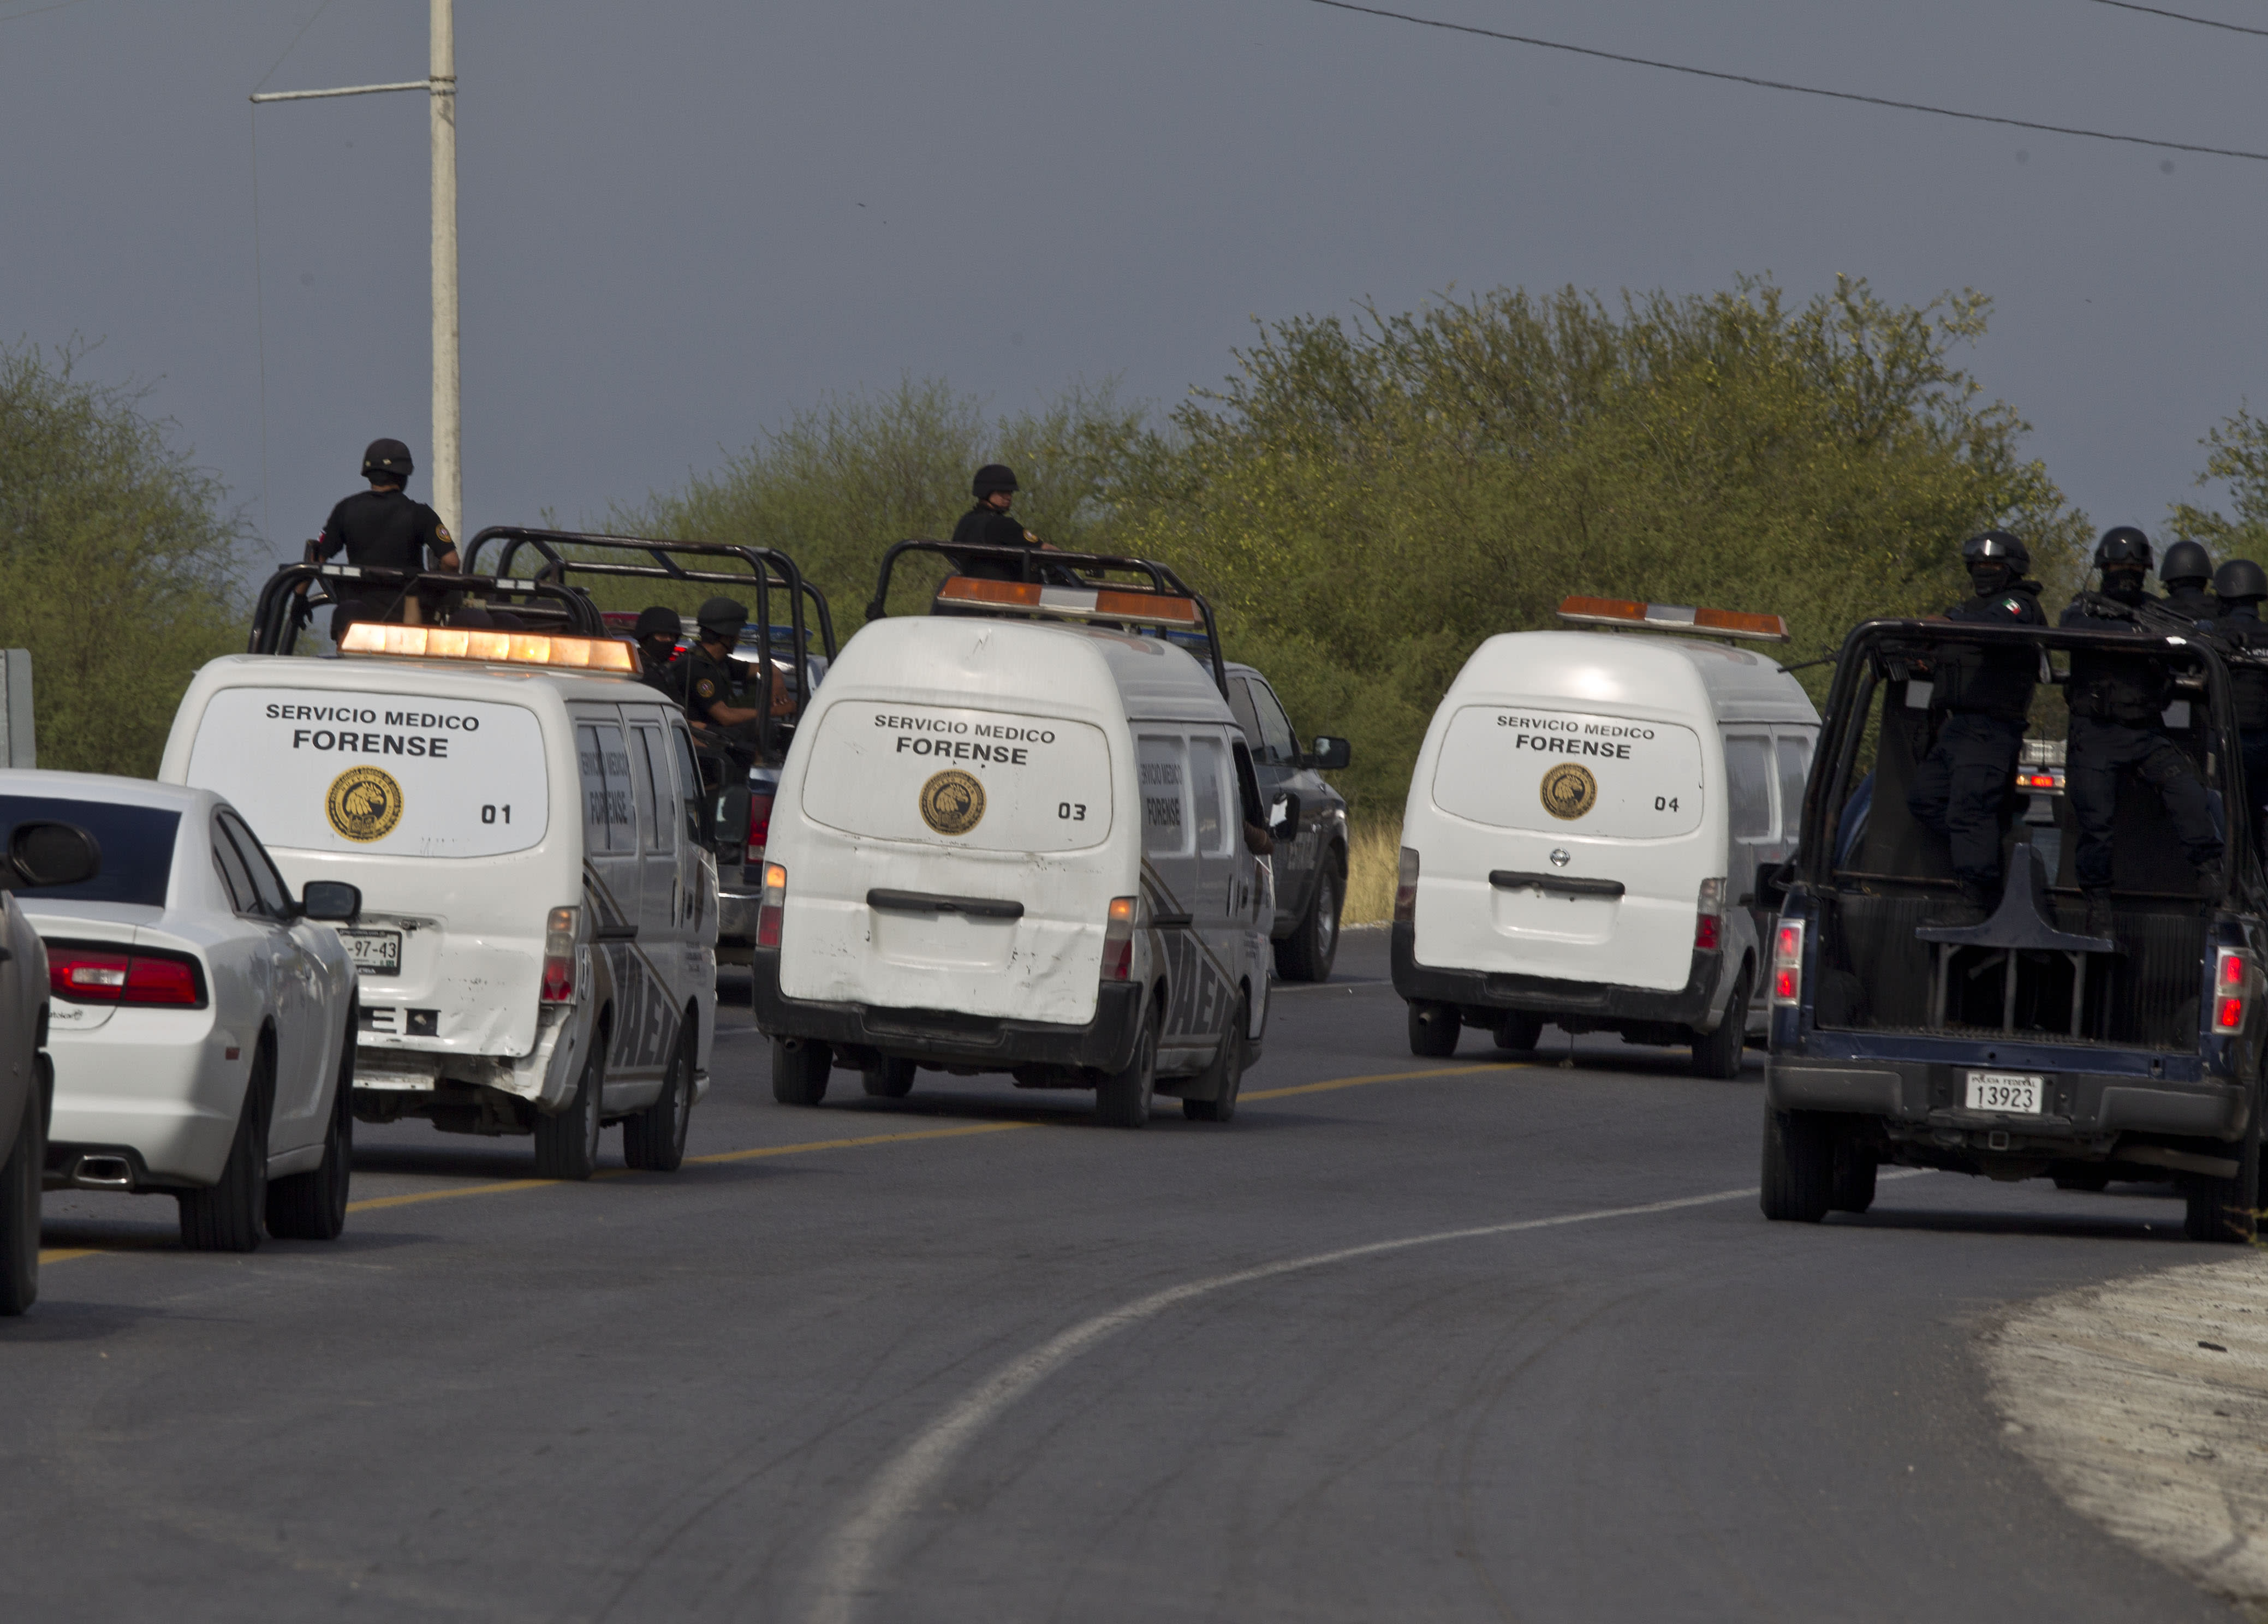 FILE - In this May 13, 2012 file photo, federal police escort three forensic vans carrying bodies found along a highway connecting the northern Mexican metropolis of Monterrey, Mexico, to the U.S. border. Two months after police found 49 dismembered bodies strewn on a Mexican highway leading to the Texas border, authorities have not identified a single victim. (AP Photo/Christian Palma, File)